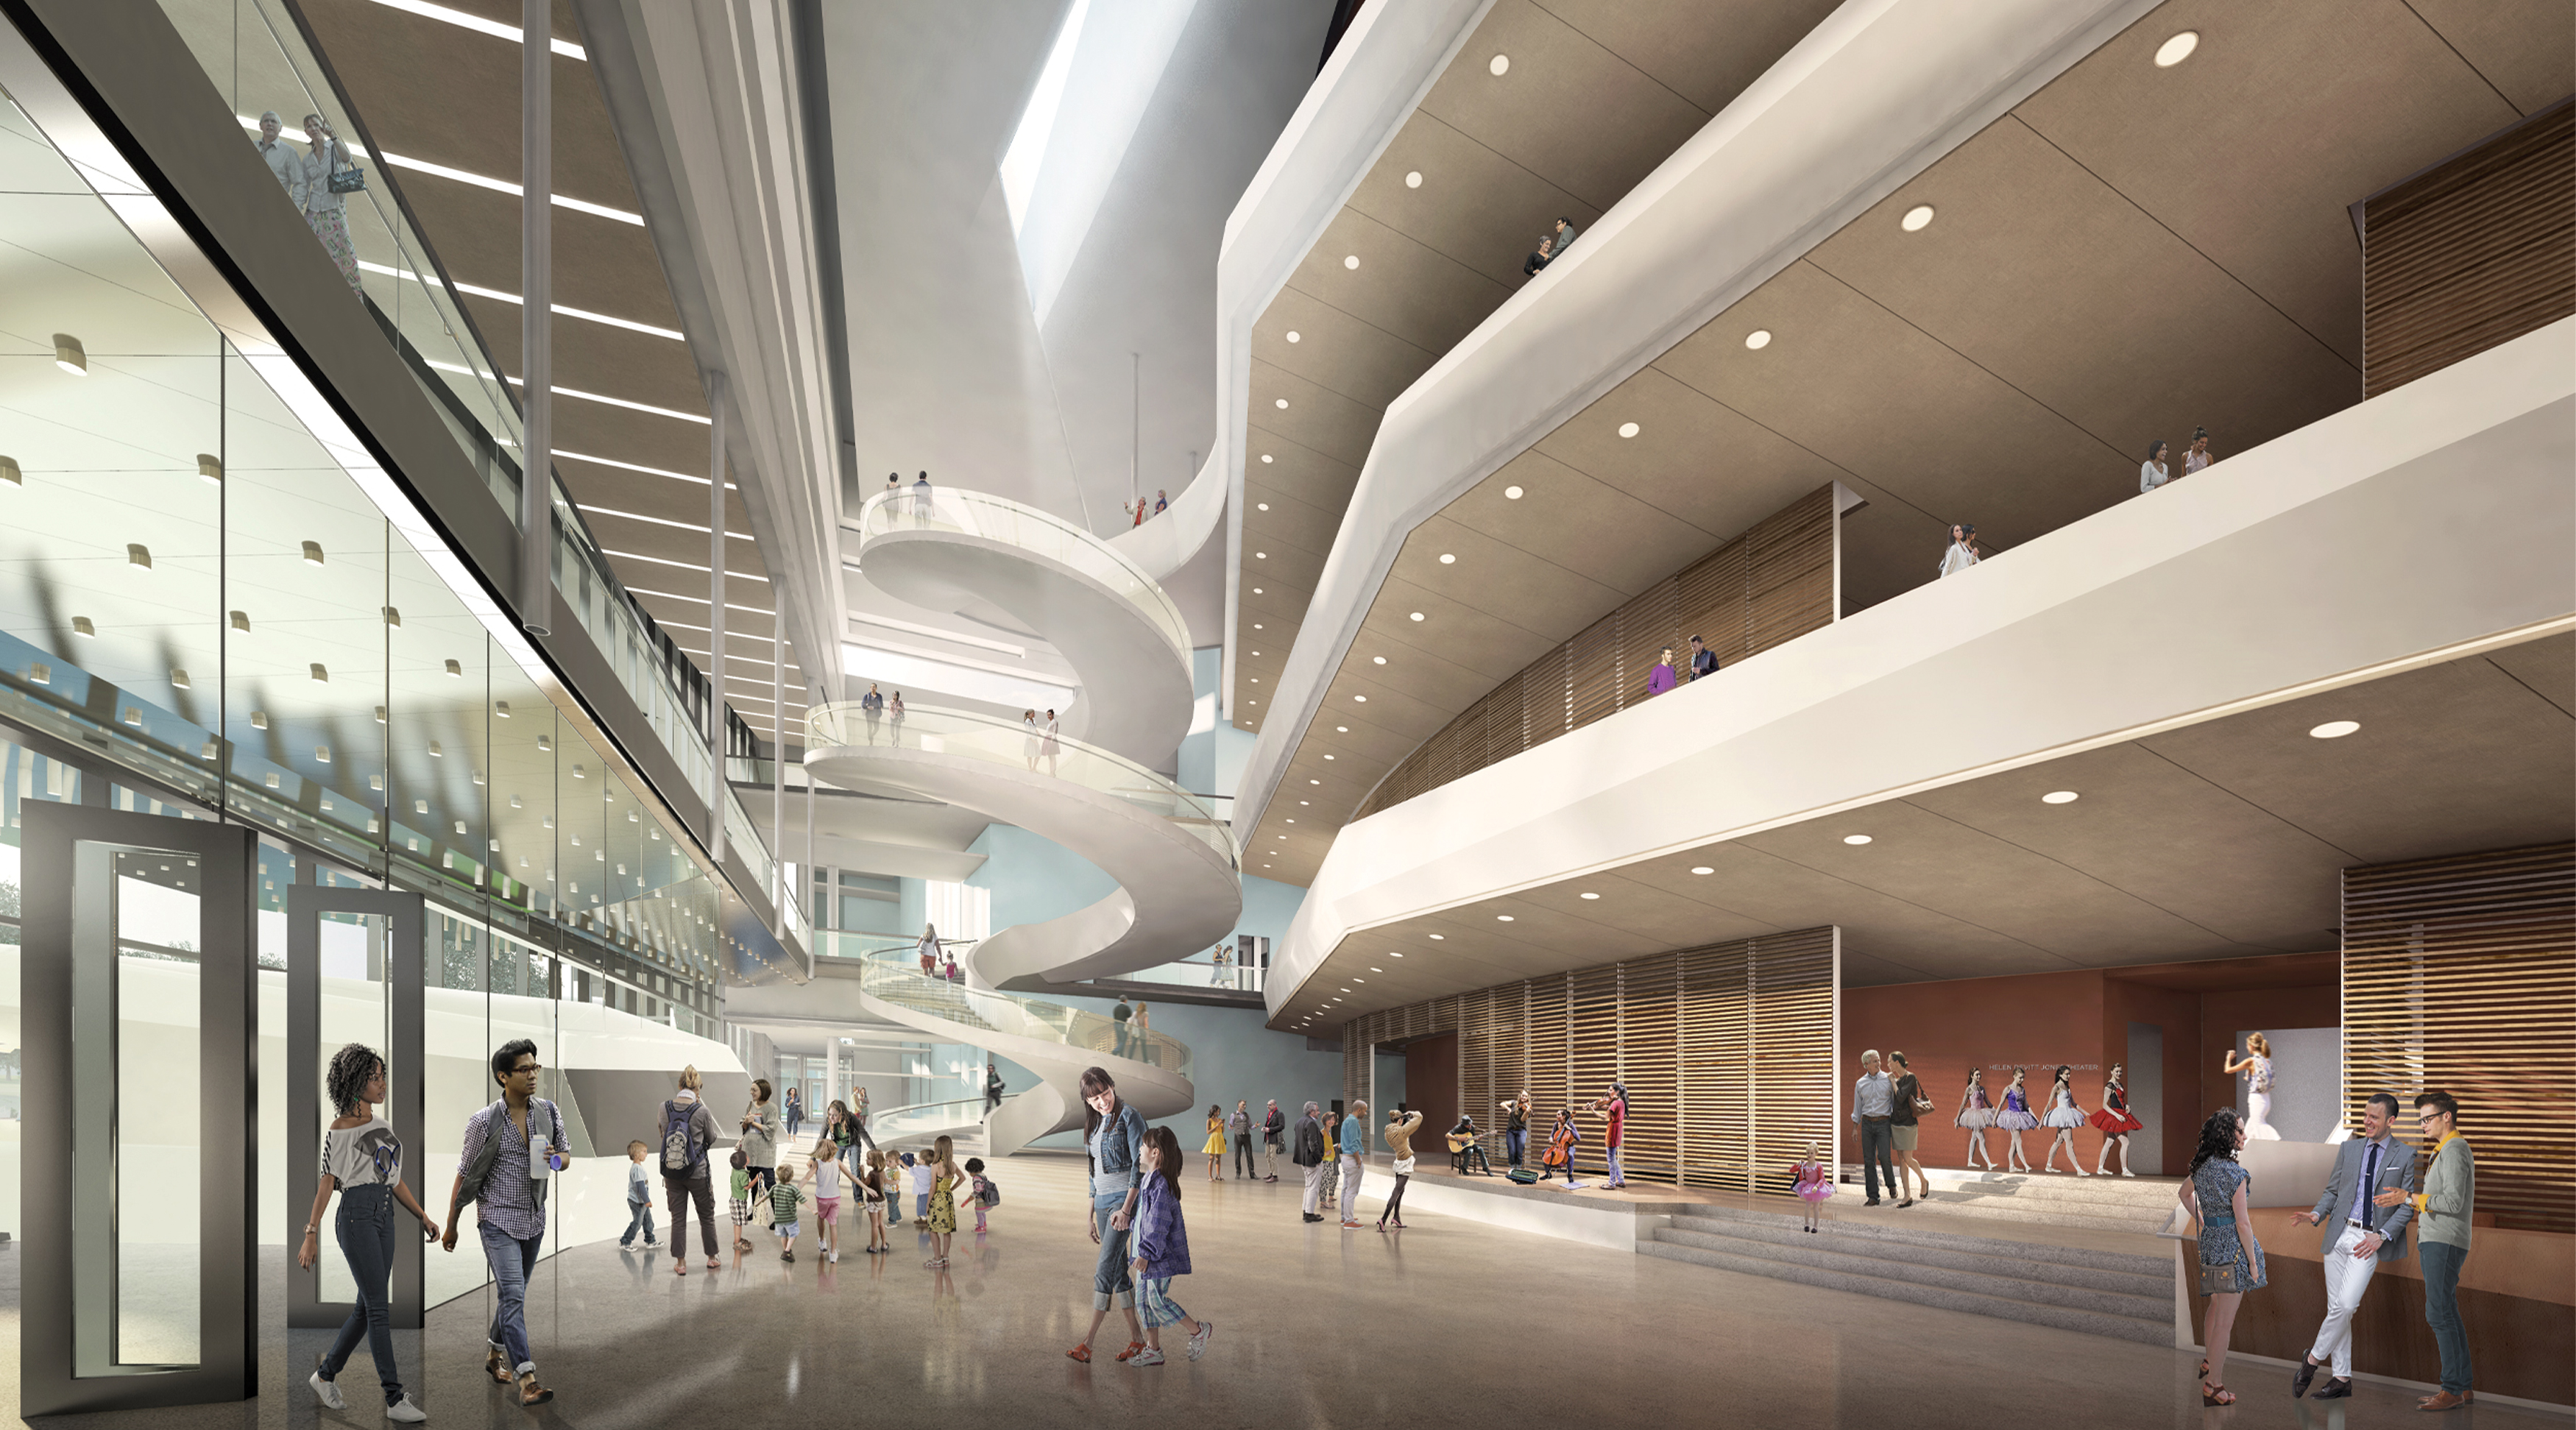 The Buddy Holly Hall of Performing Arts and Sciences, in Lubbock, Texas, interior architectural rendering